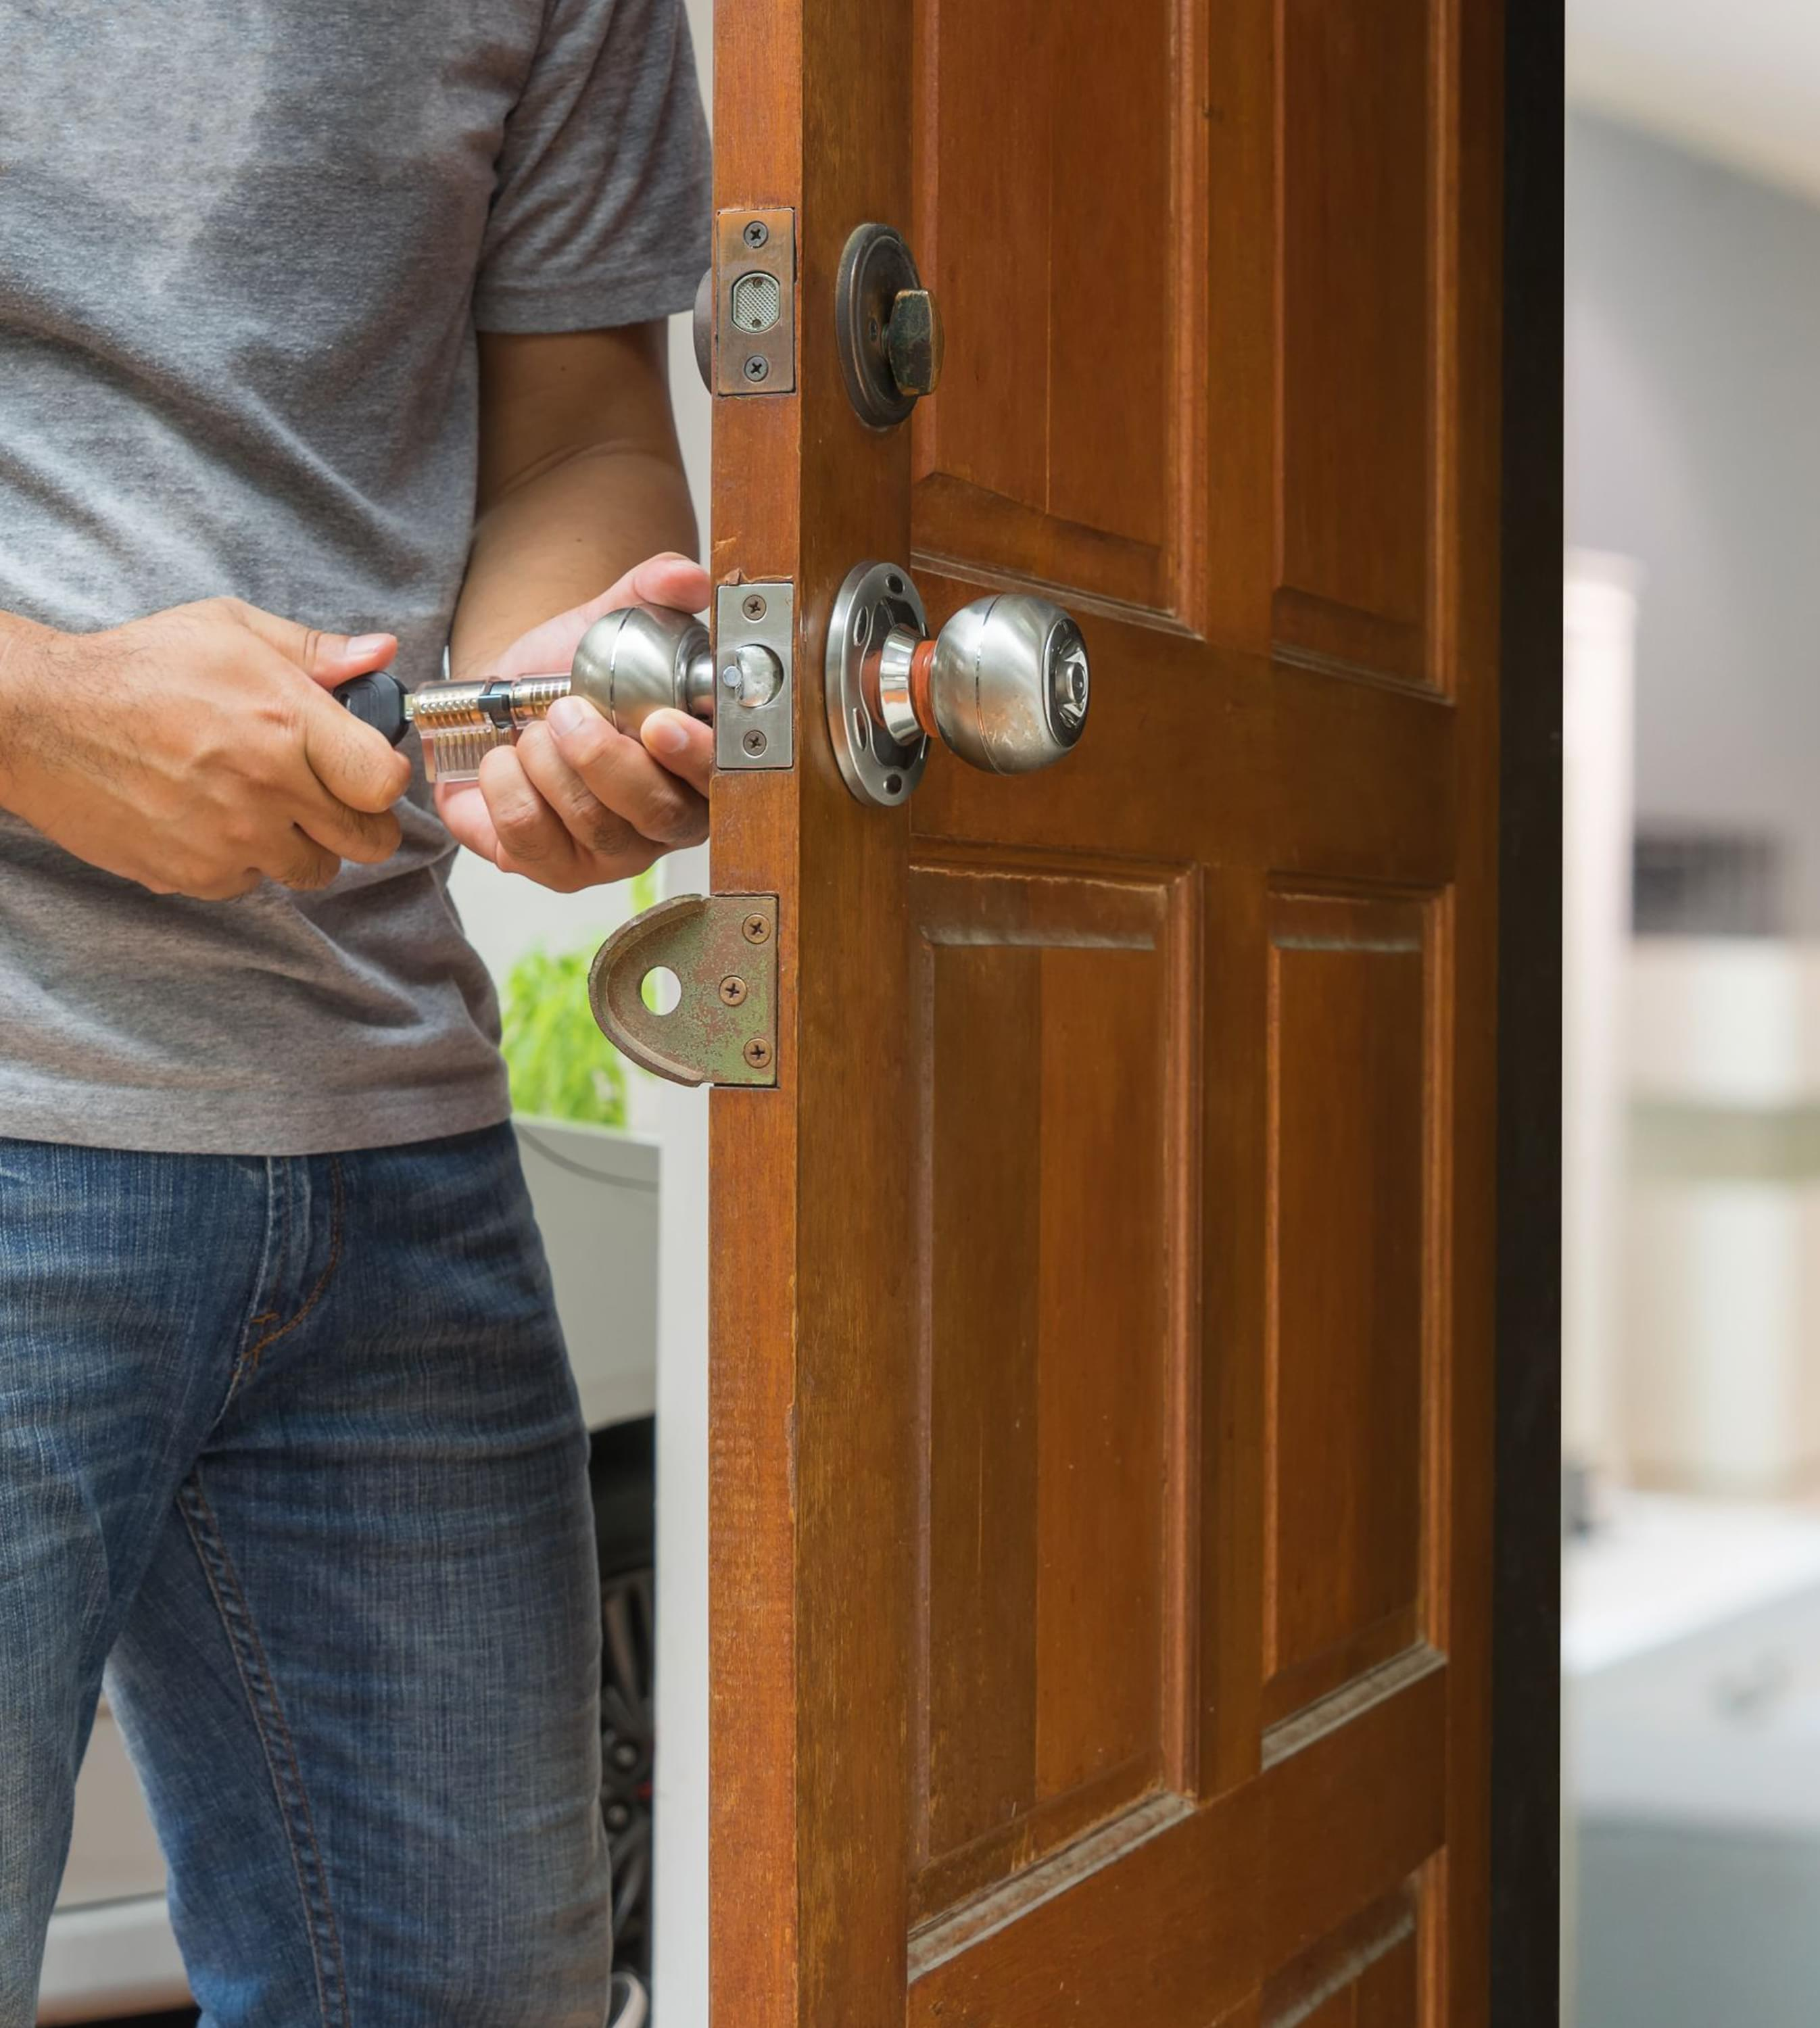 24hr professional mobile locksmiths